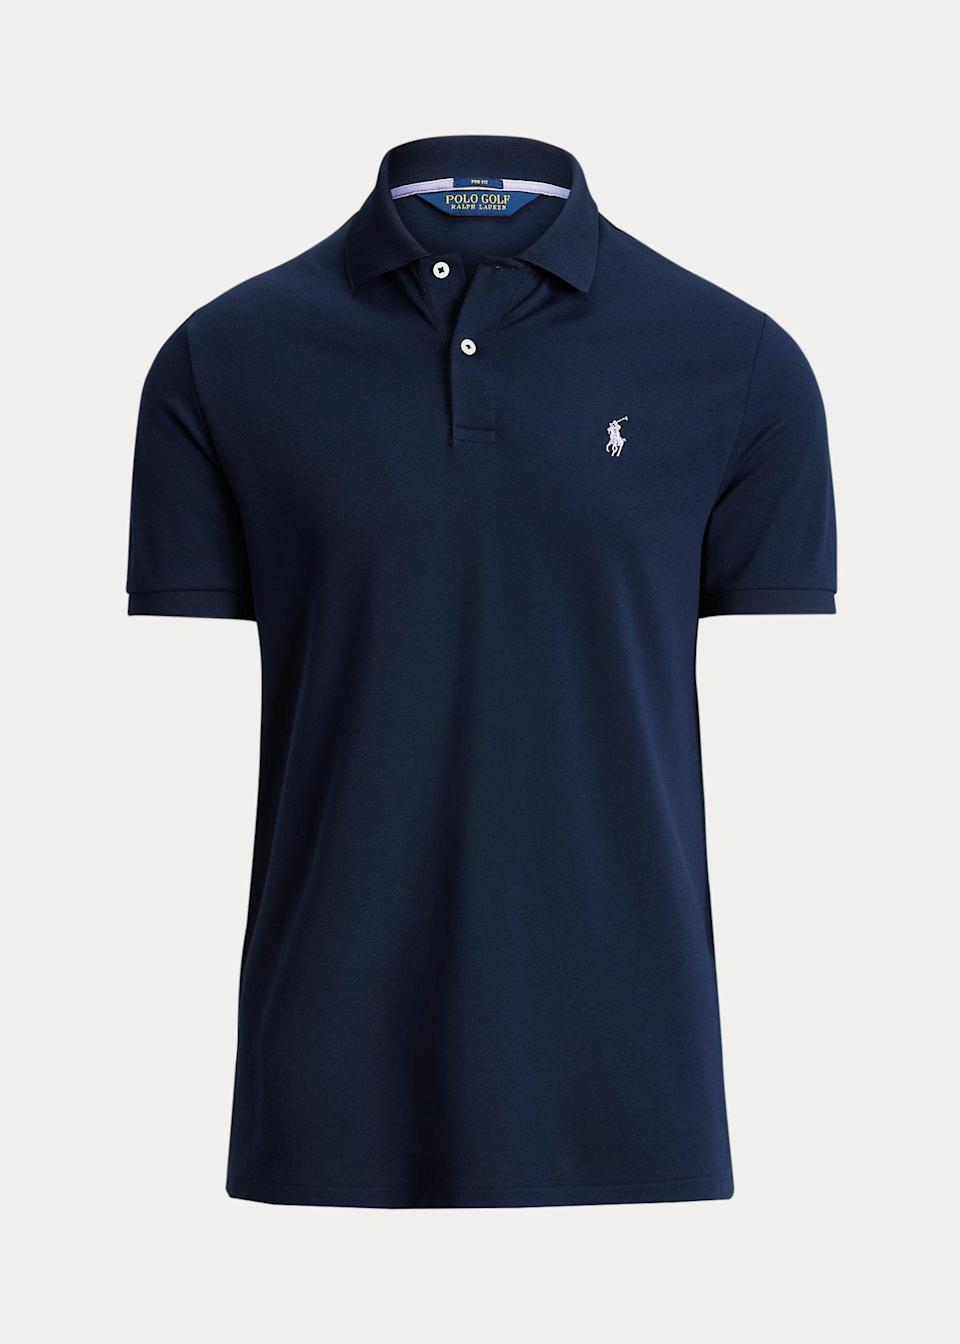 "<p><strong>Custom Slim Fit Performance Polo</strong></p><p>Ralph Lauren</p><p><strong>$89.50</strong></p><p><a href=""https://go.redirectingat.com?id=74968X1596630&url=https%3A%2F%2Fwww.ralphlauren.com%2Fbrands-golf-men-tournament-looks-cg%2Fcustom-slim-fit-performance-polo-shirt%2F564403.html%3Fdwvar564403_colorname%3DFrench%2BNavy%26cgid%3Dbrands-golf-men-tournament-looks-cg%26webcat%3Dsearch%23start%3D1%26sz%3D32%26cgid%3Dbrands-golf-men-tournament-looks-cg&sref=https%3A%2F%2Fwww.esquire.com%2Fstyle%2Fmens-fashion%2Fg36197949%2Fbest-golf-clothing-brands%2F"" rel=""nofollow noopener"" target=""_blank"" data-ylk=""slk:Shop Now"" class=""link rapid-noclick-resp"">Shop Now</a></p><p>When it doubt, trust in the Polo Pony. Ralph Lauren has been making great golf apparel for years. The signature polo has always been a great option for the golf course, but the brand also makes them tailored specifically for sport. </p>"